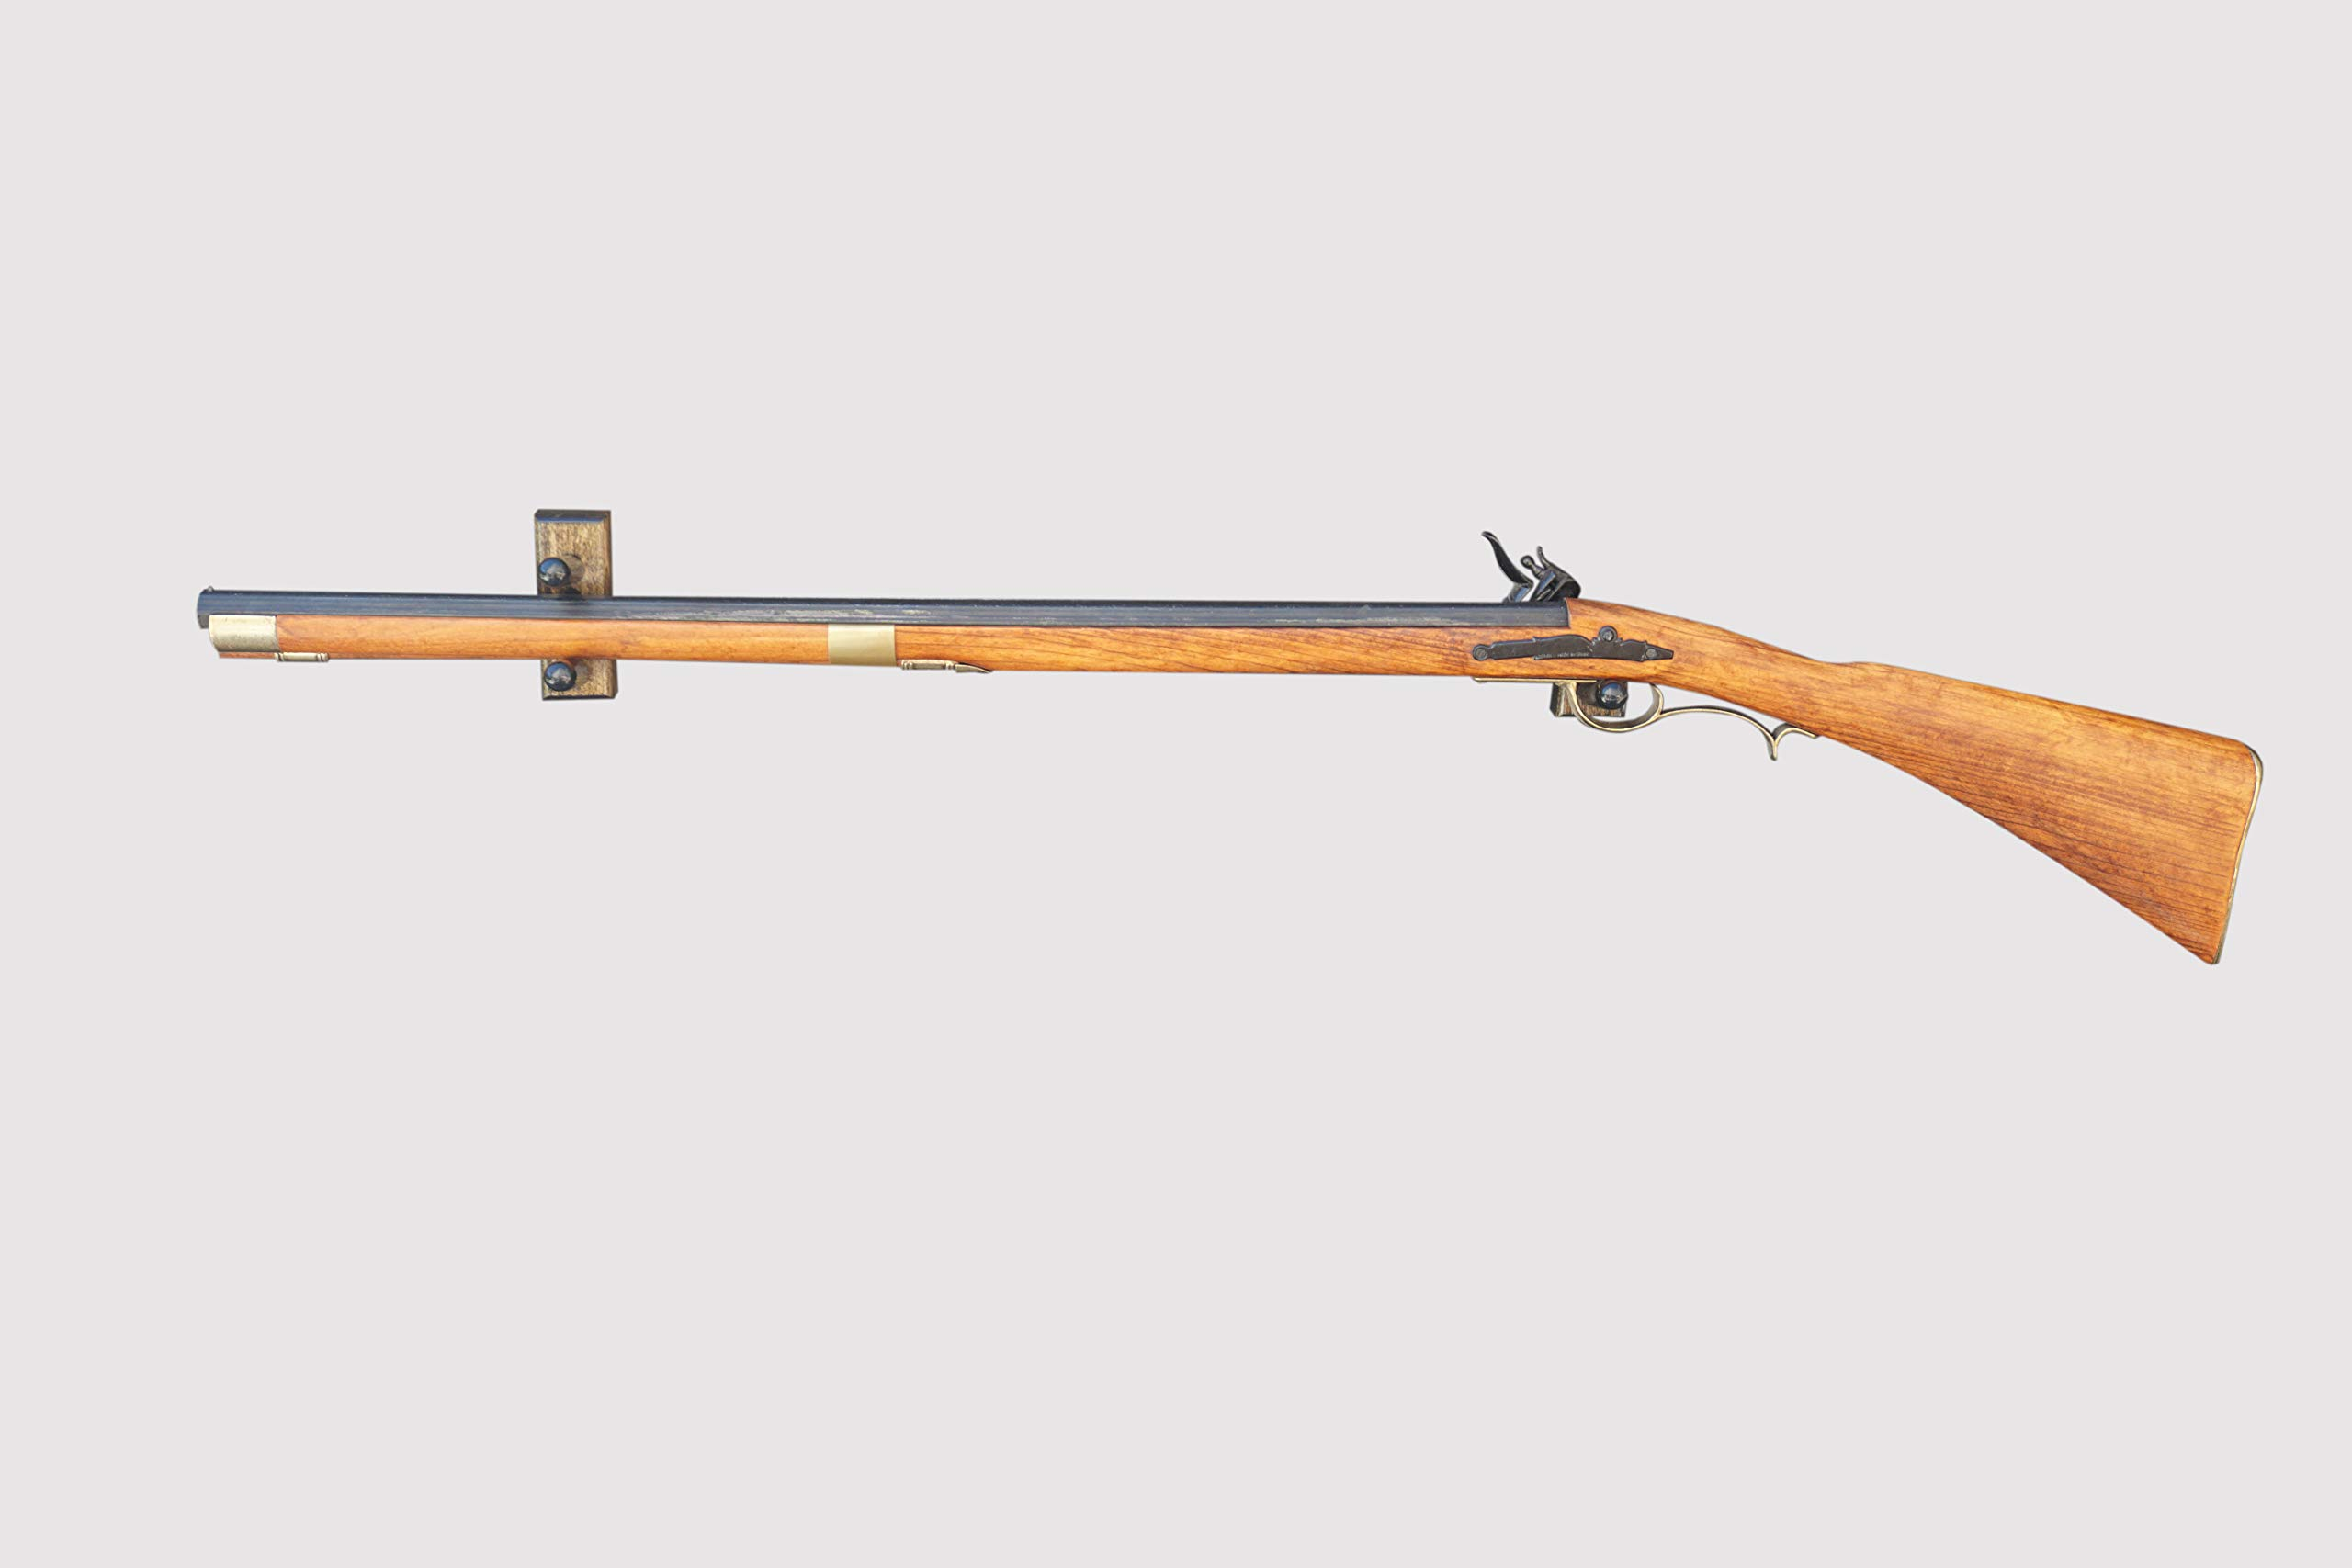 Horizontal Wall Mount for an Antique Rifle (Made in the USA) (Aged) by KR Ideas